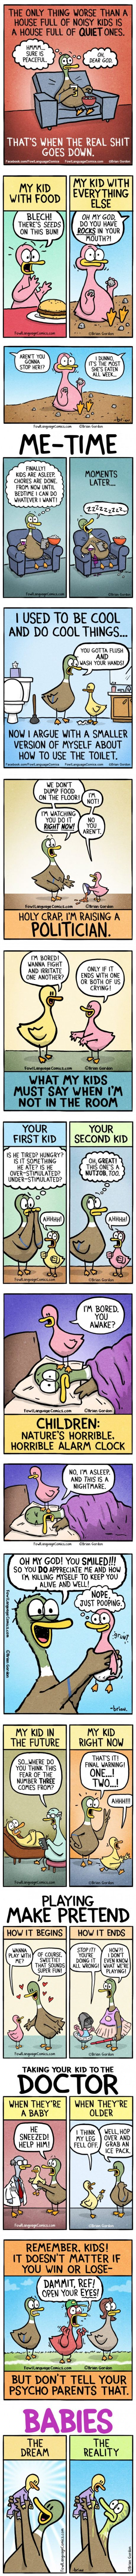 15 Superb Comics Which Absolutely Every Parent Can Relate (By Fowl Language Comics)